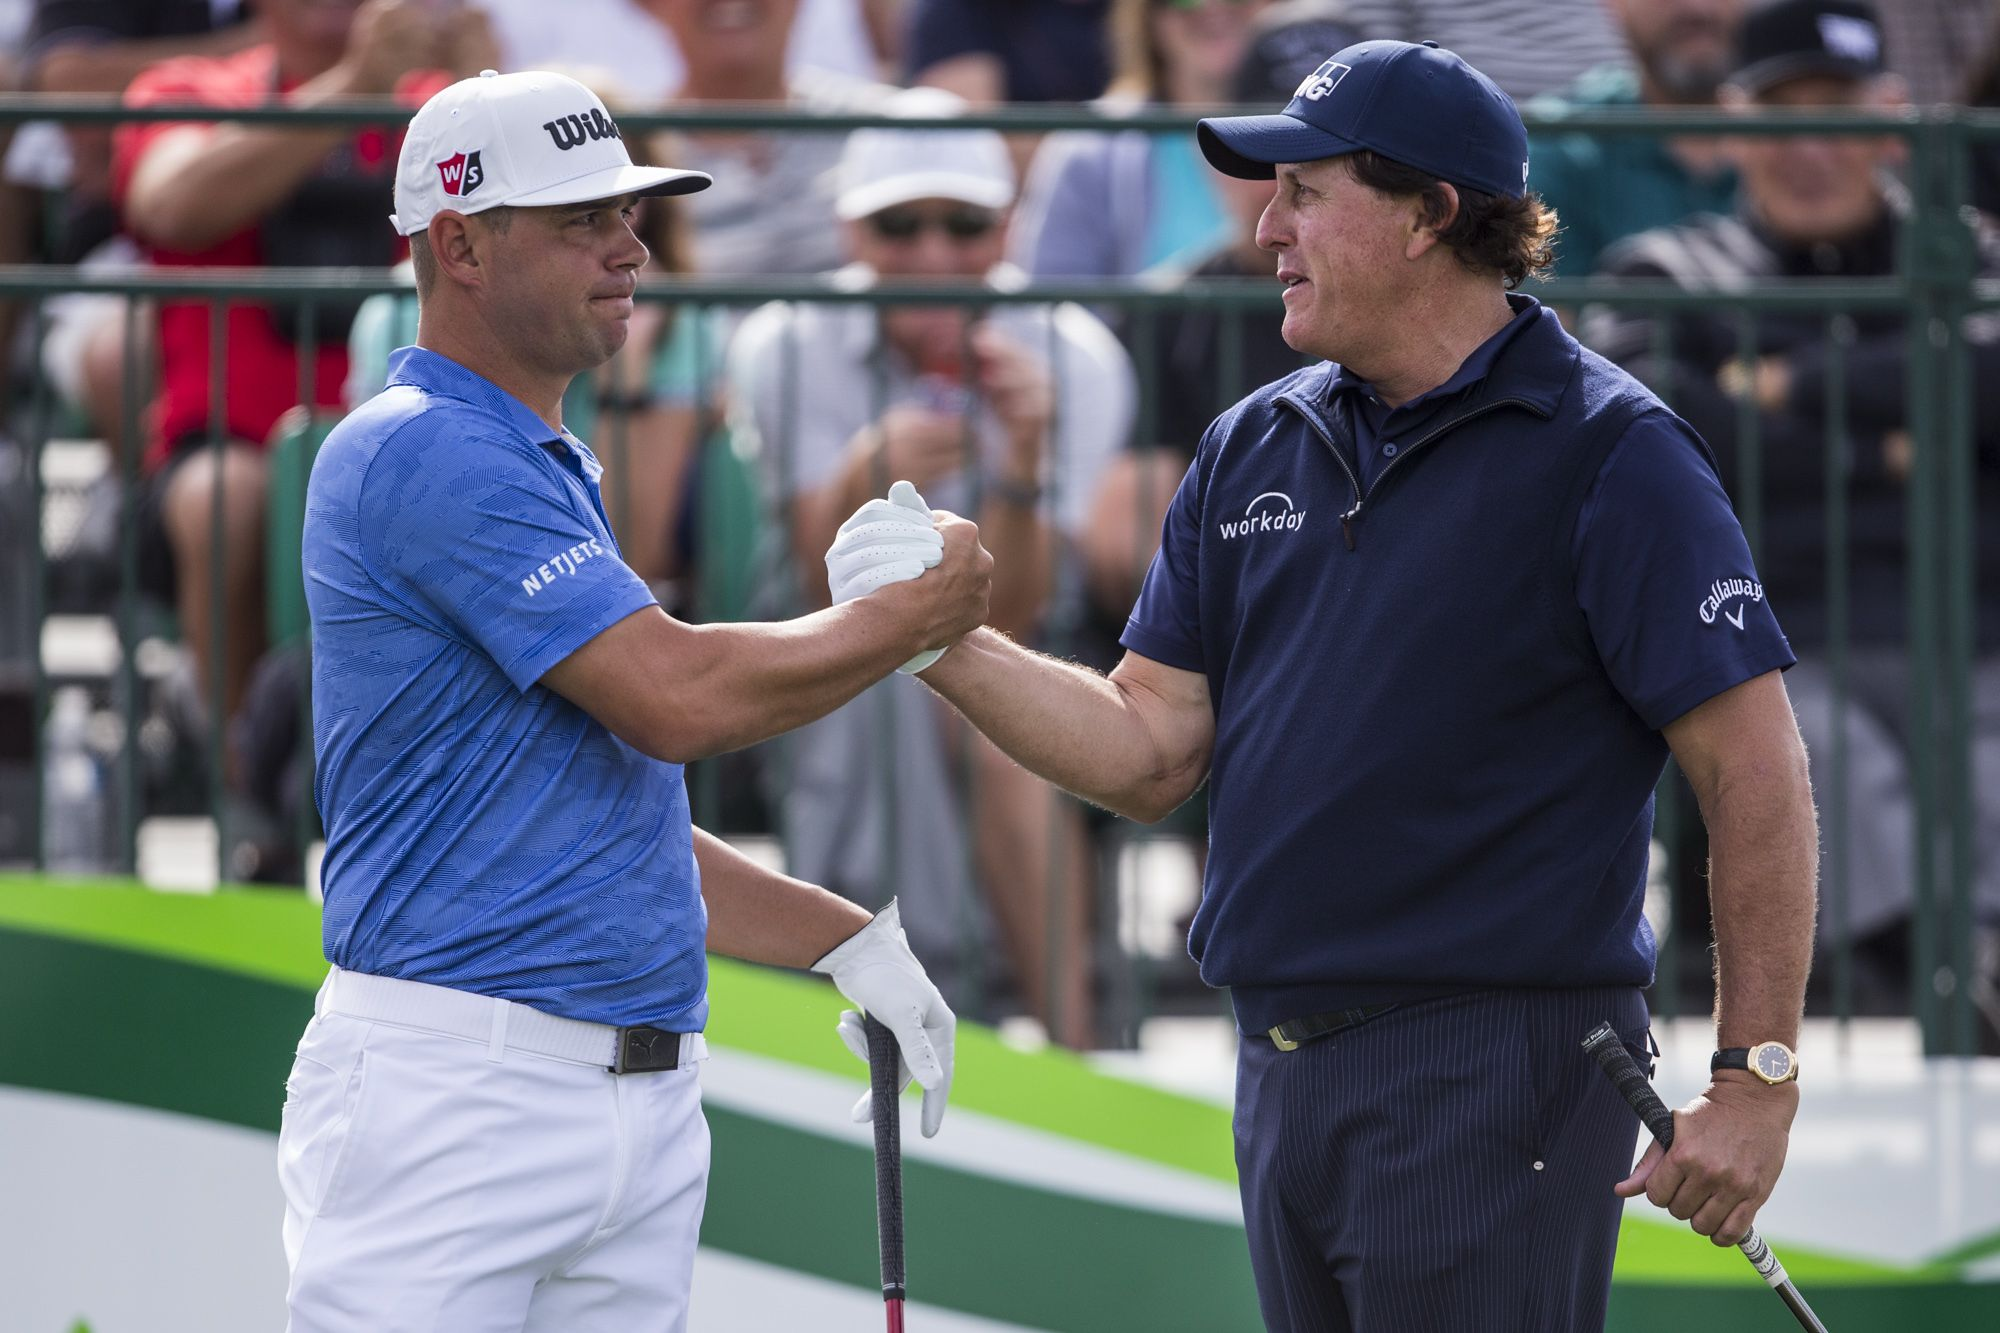 Gary Woodland and Phil Mickelson